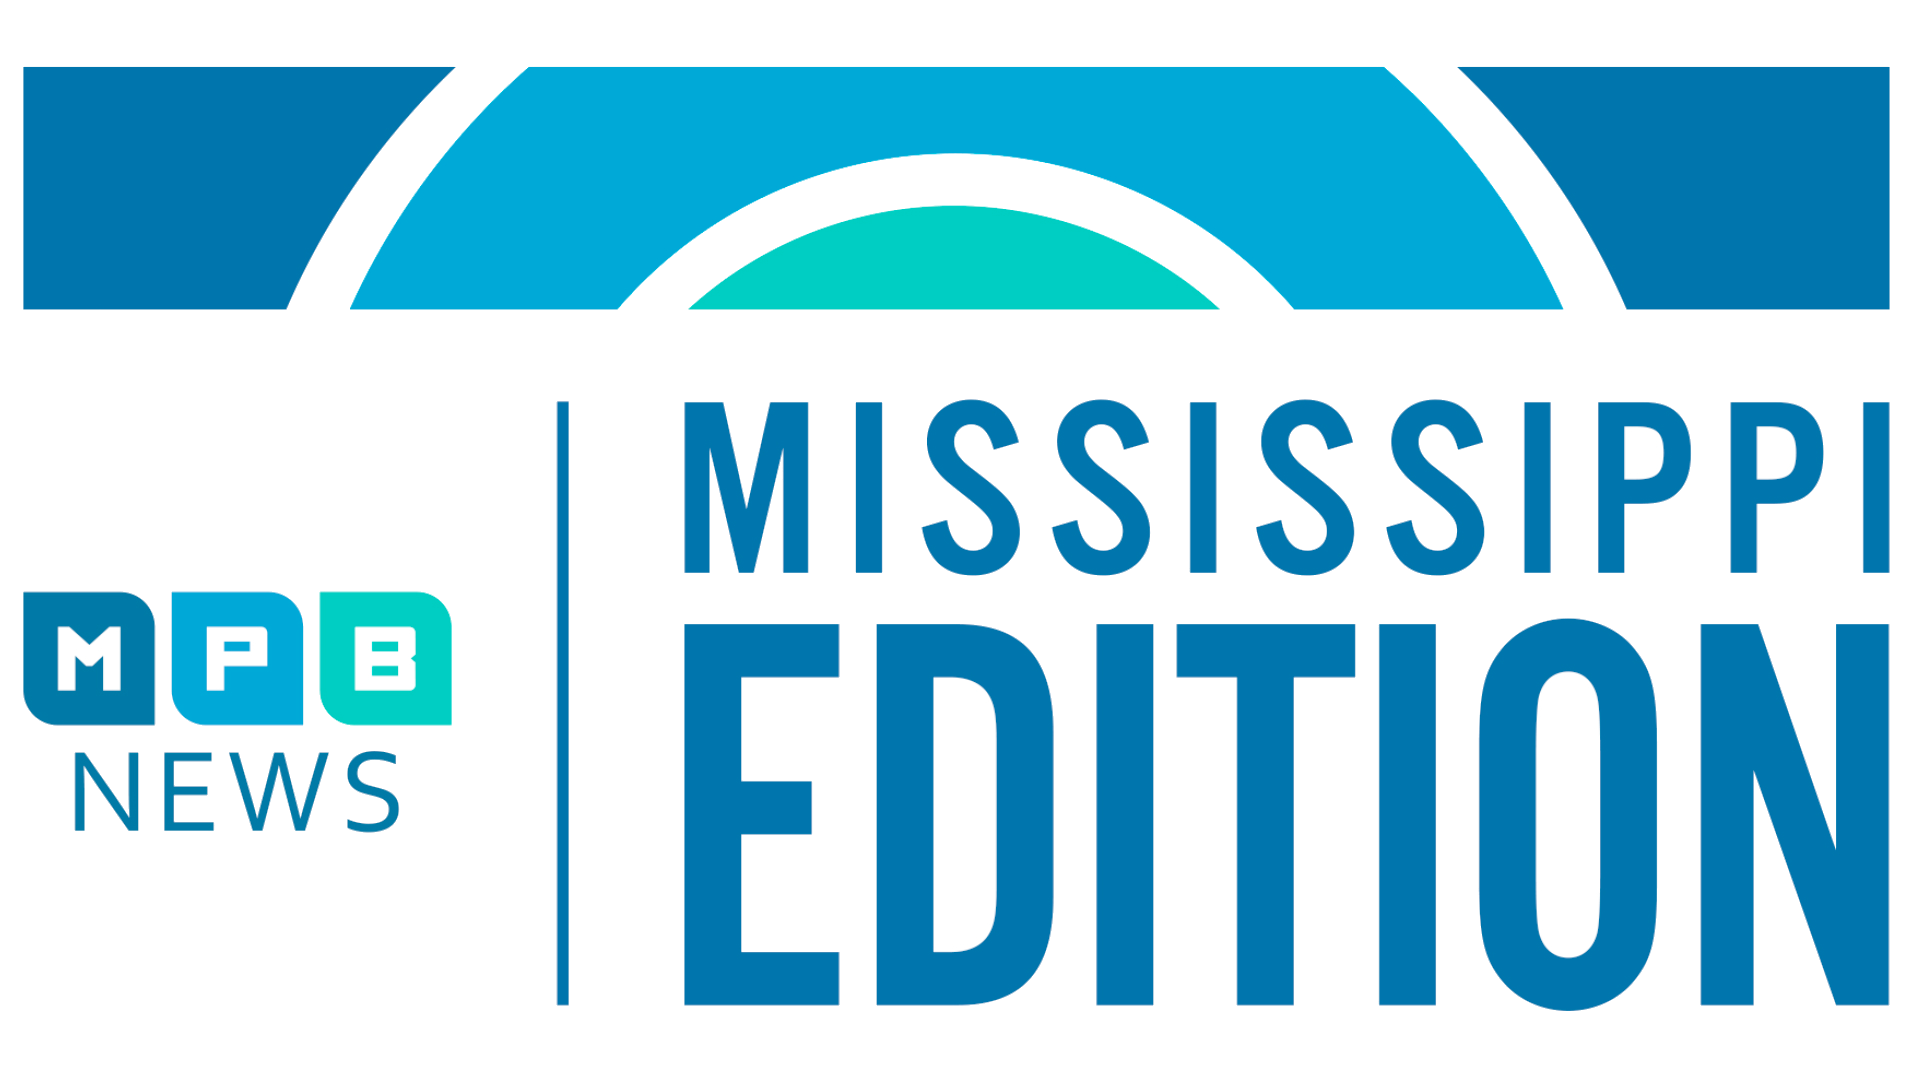 Mississippi Edition